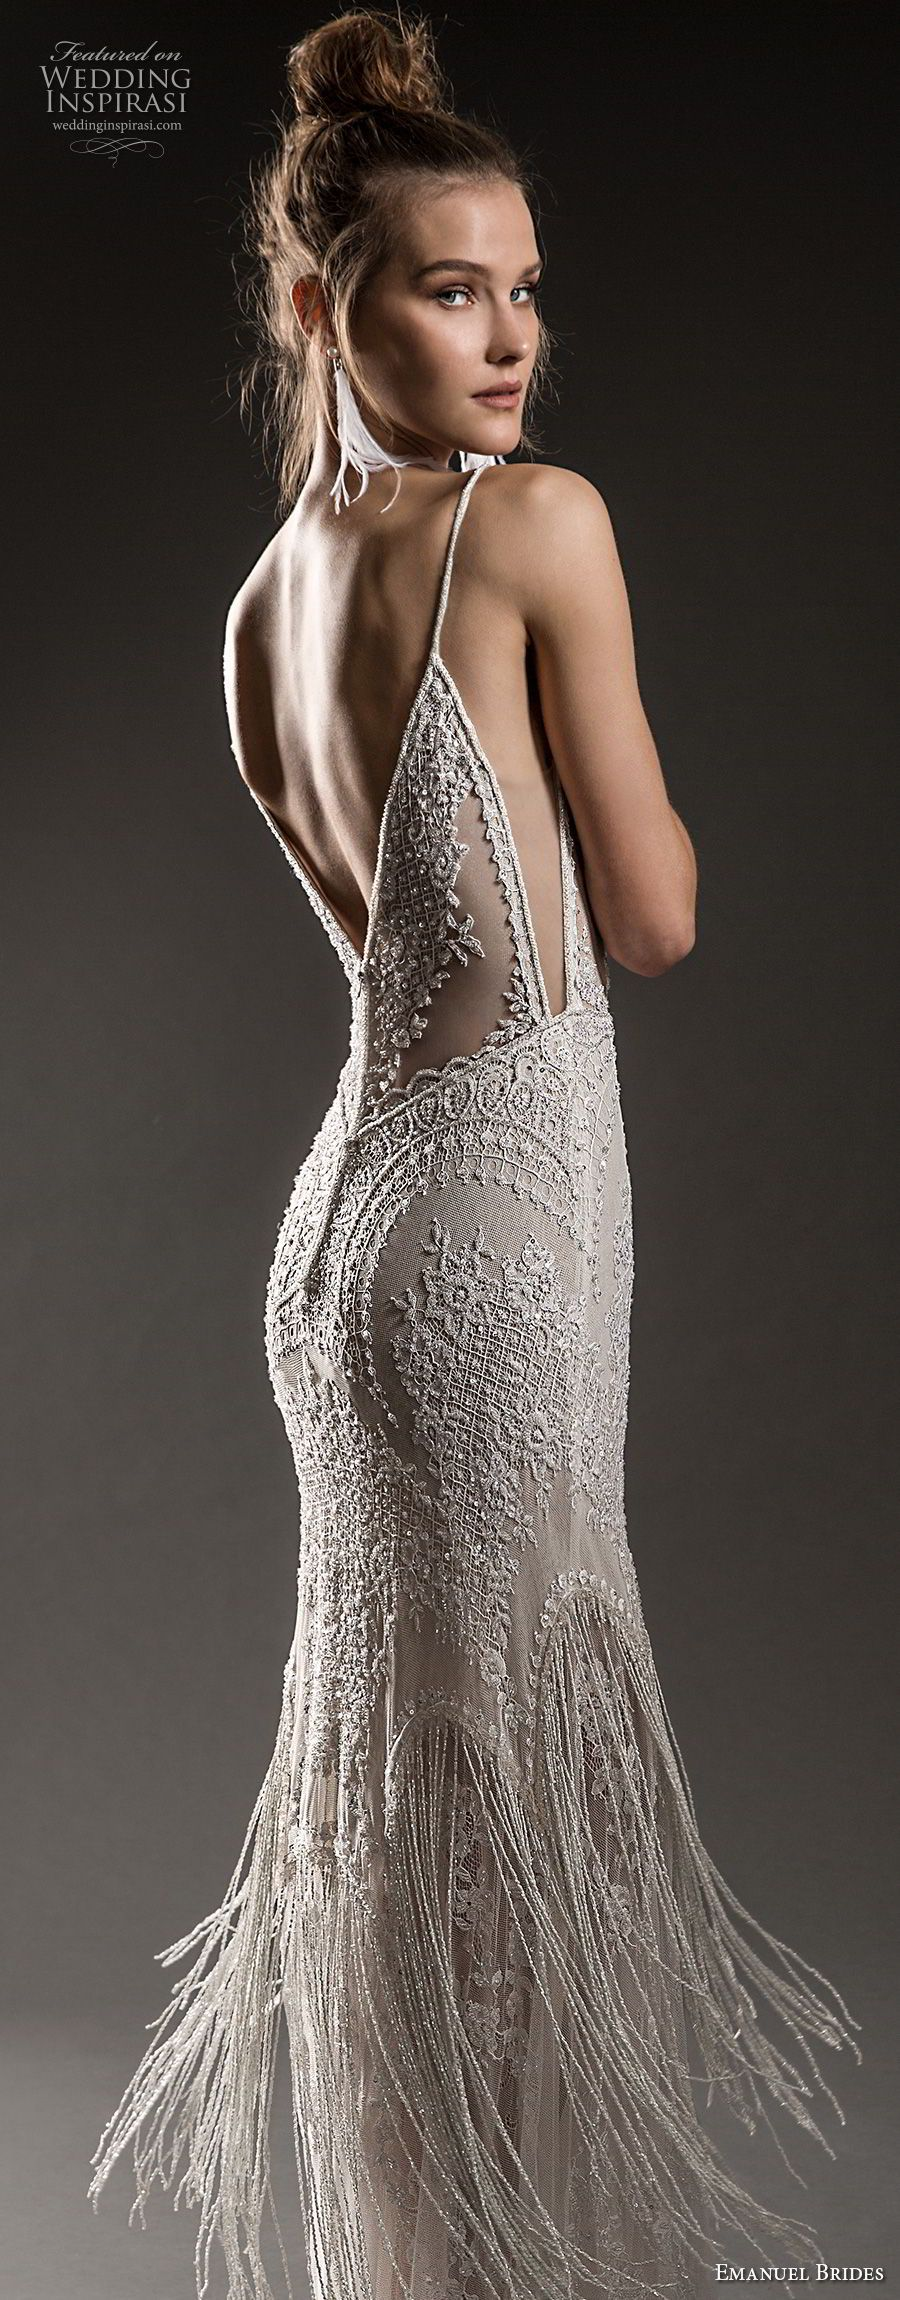 Great gatsby inspired wedding dresses  Emanuel Brides  Wedding Dresses  Great Gatsby Inspired Wedding